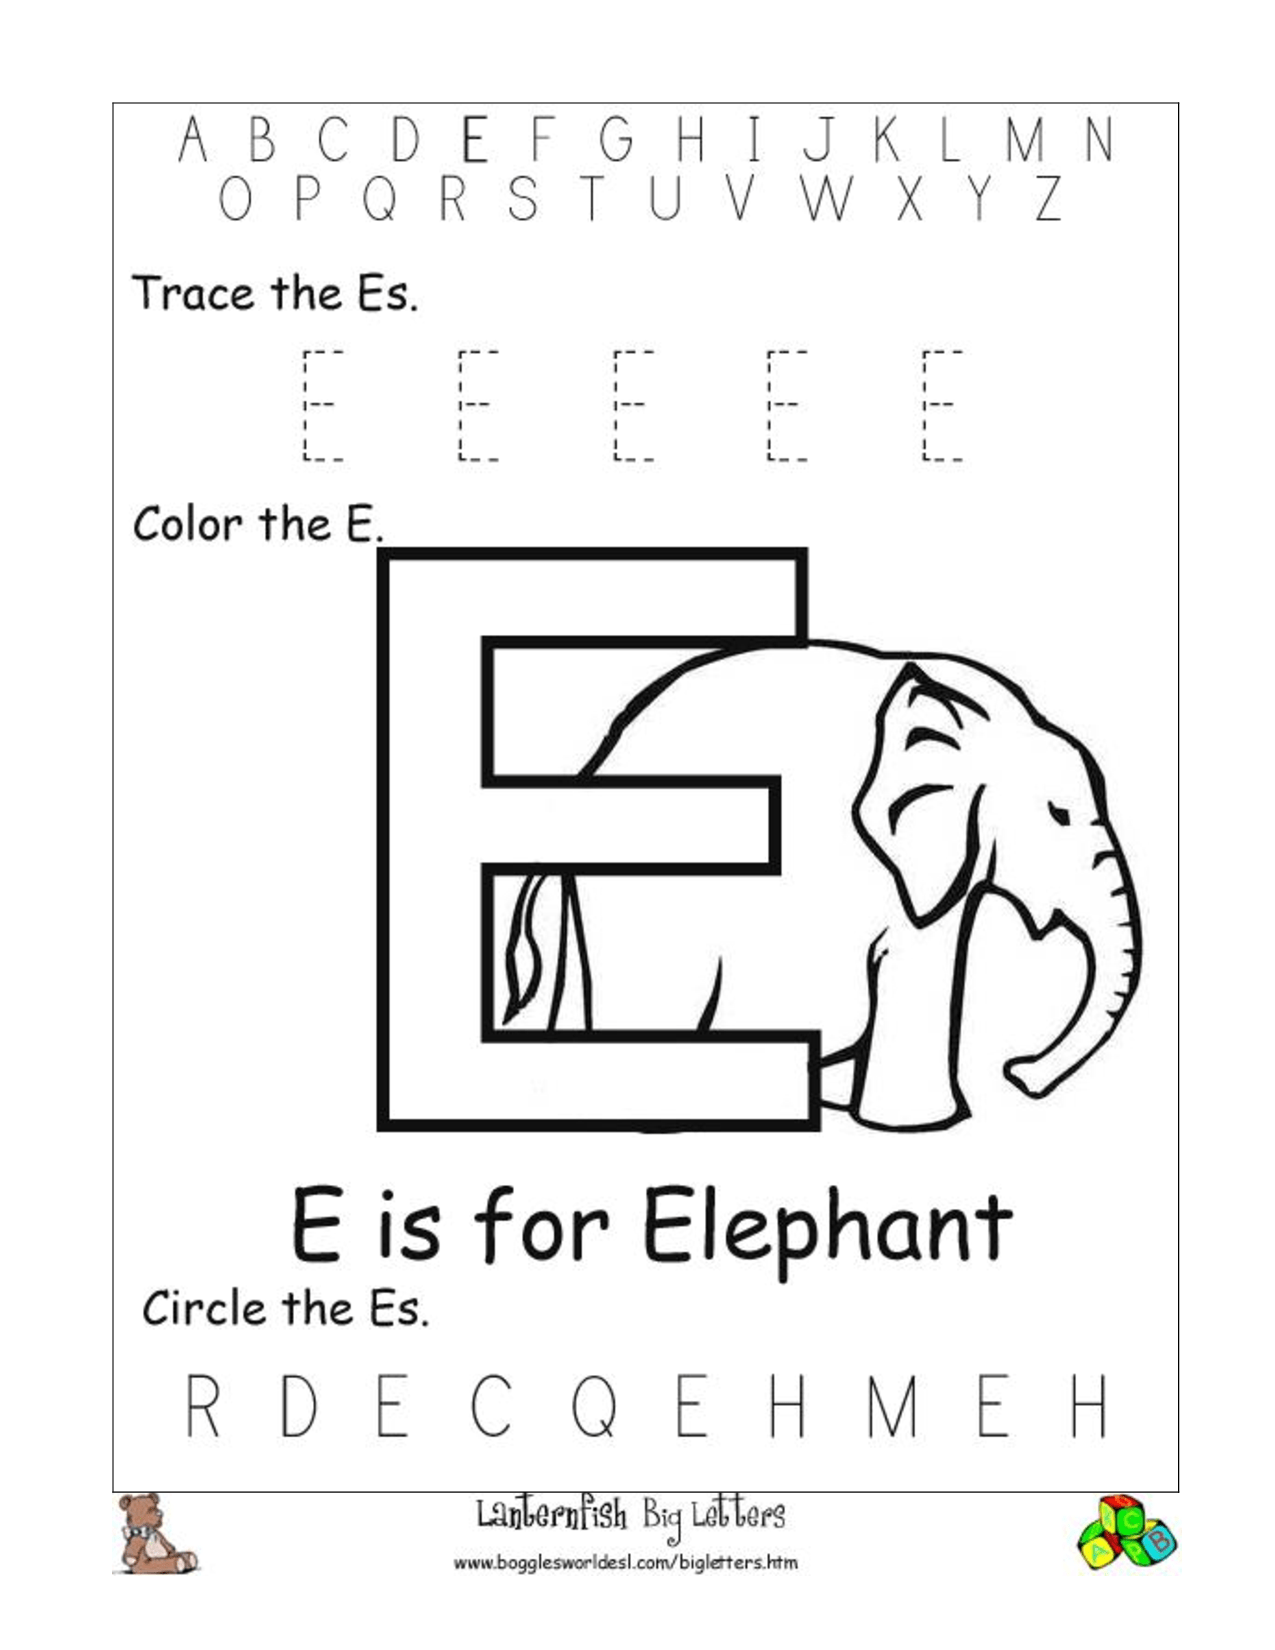 13 Best Images Of Alphabet Search Worksheet